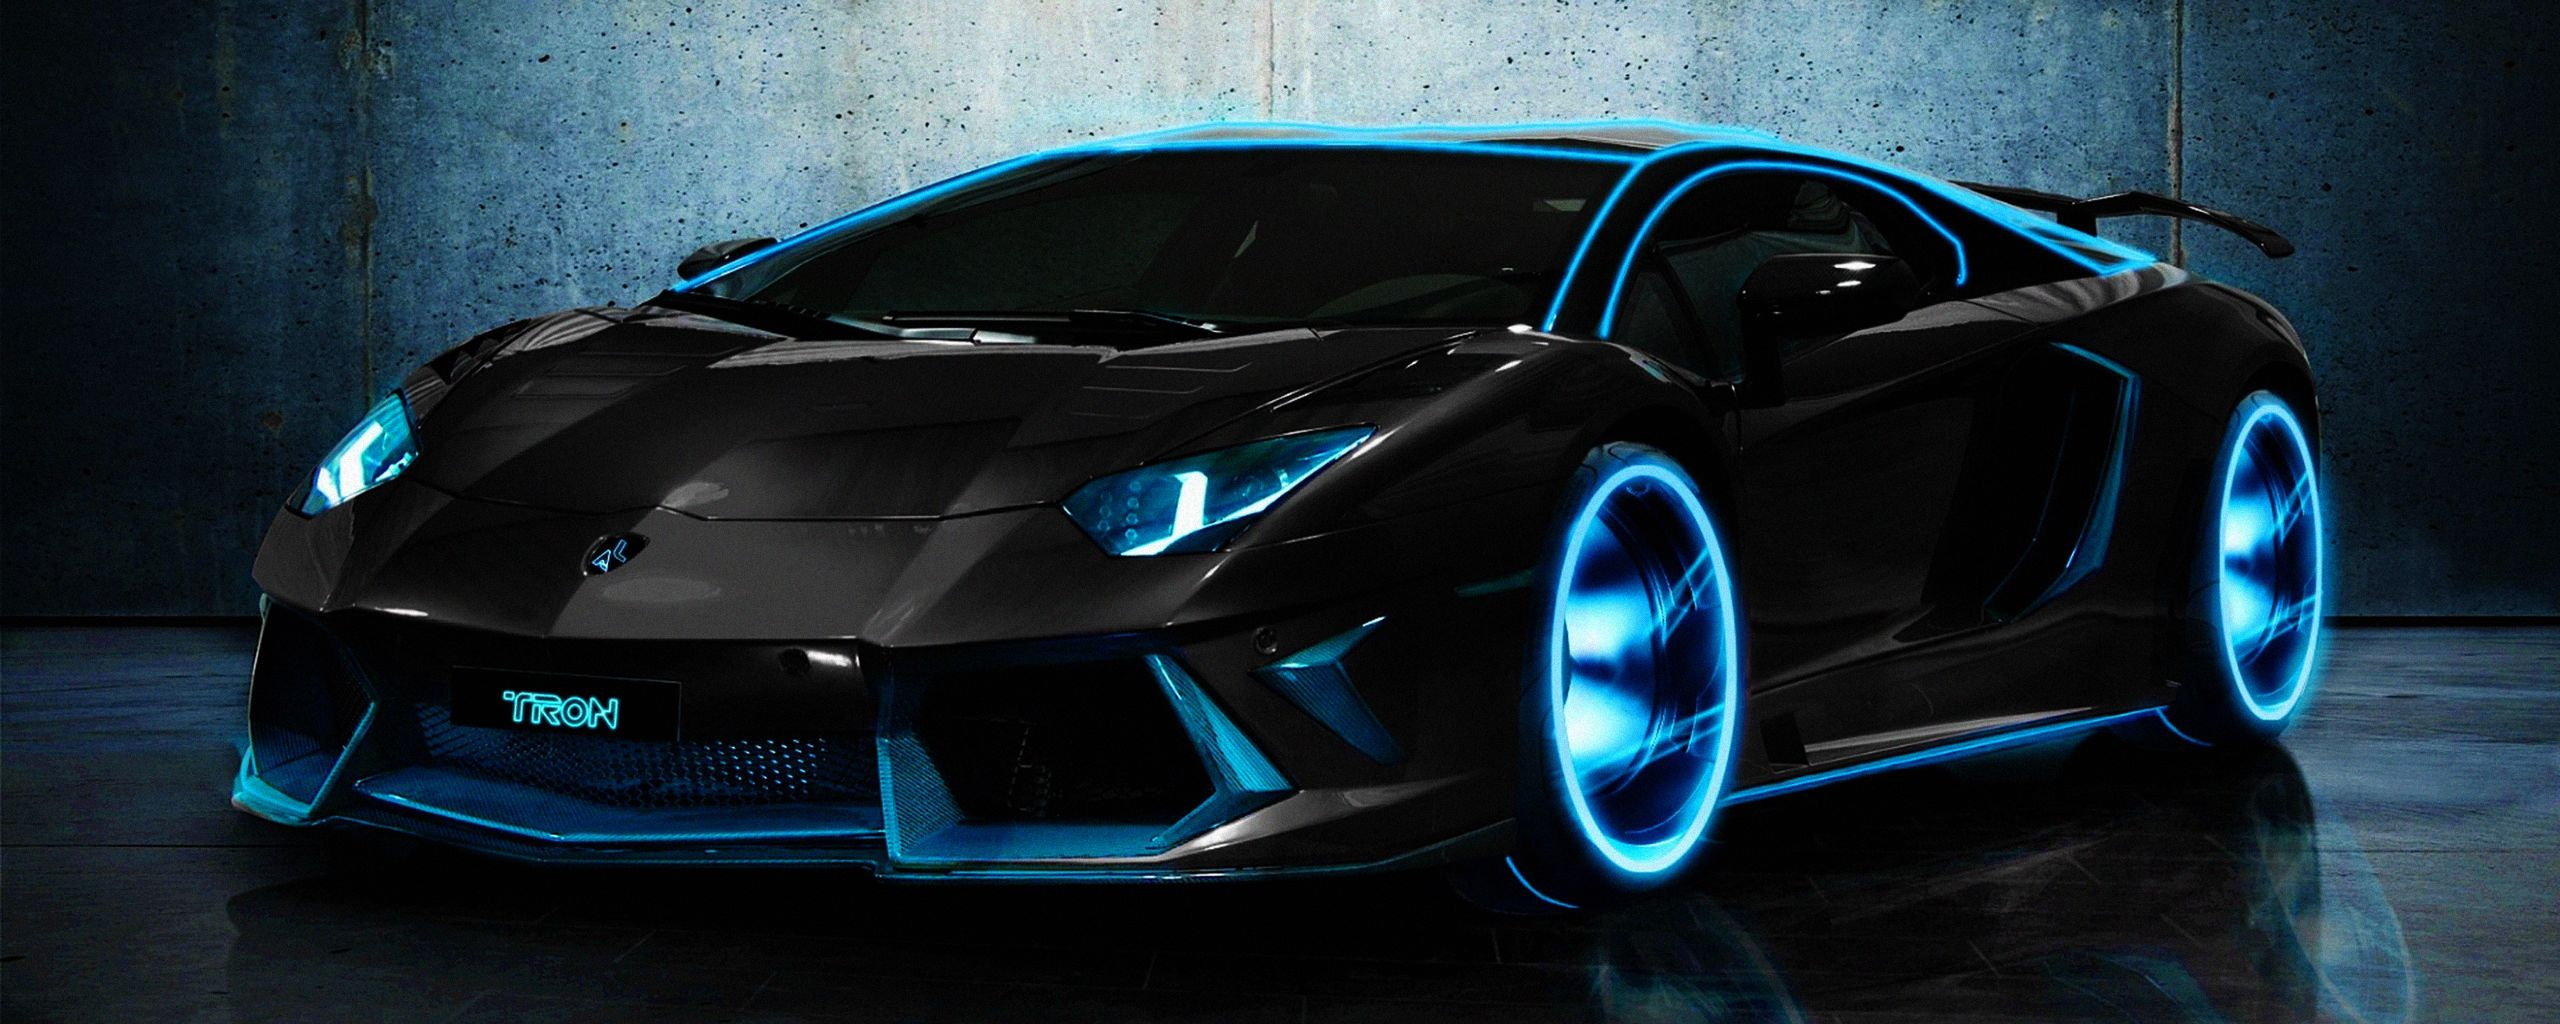 Neon Lamborghini Wallpapers , Top Free Neon Lamborghini